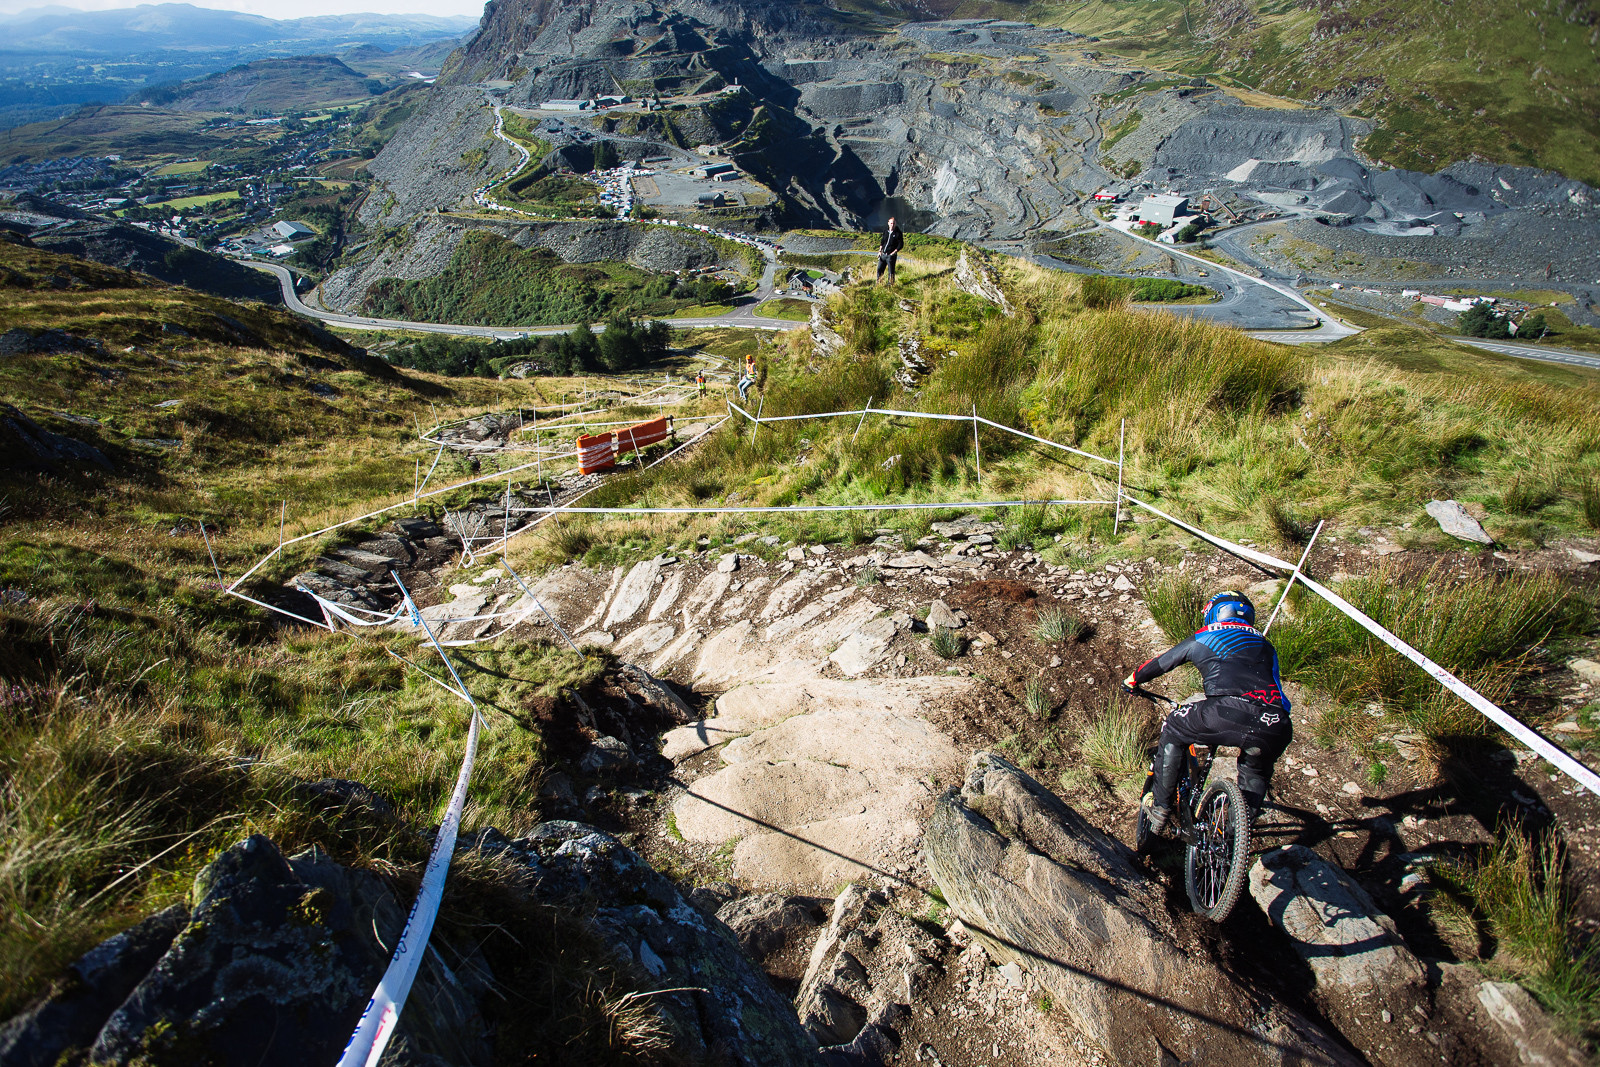 Rich Thomas, 2015 British Downhill Series Finals, Antur Stiniog - 2015 British Downhill Series Finals - Mountain Biking Pictures - Vital MTB